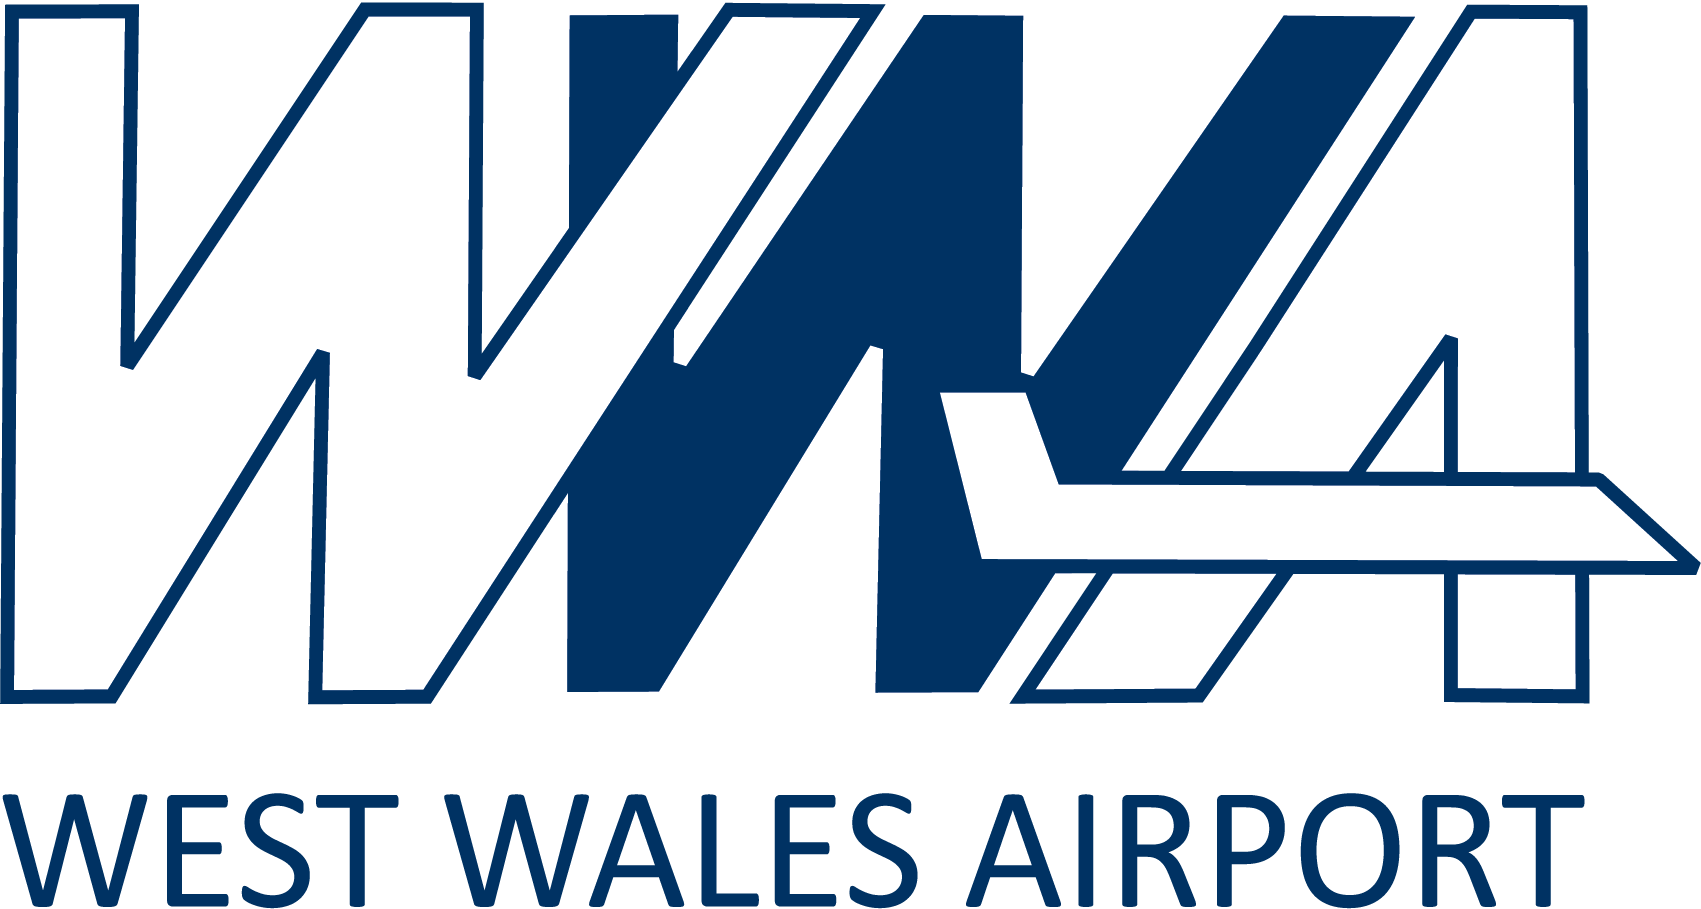 West Wales Airport Aberporth